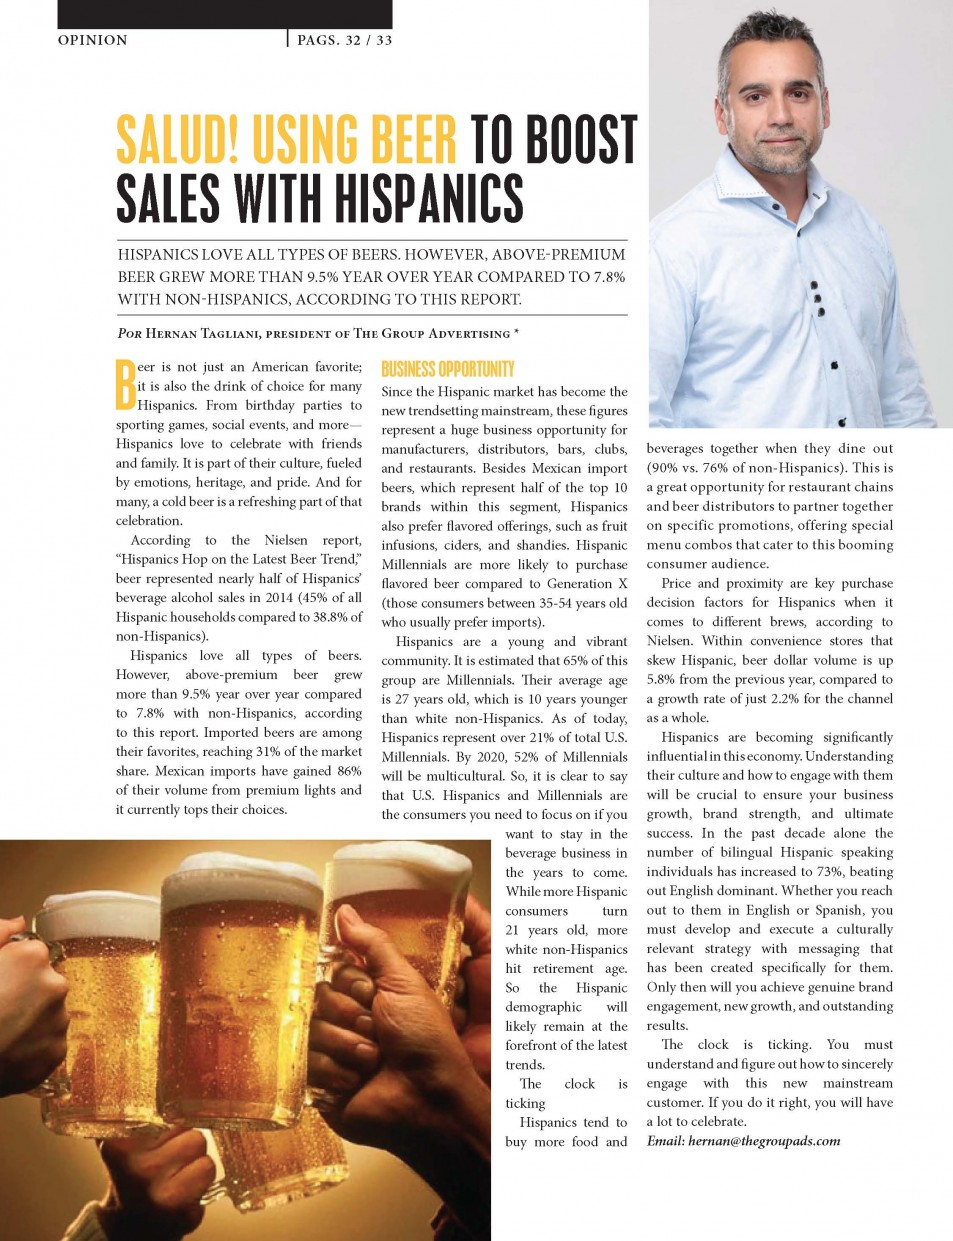 SALUD! USING BEER TO BOOST SALES WITH HISPANICS